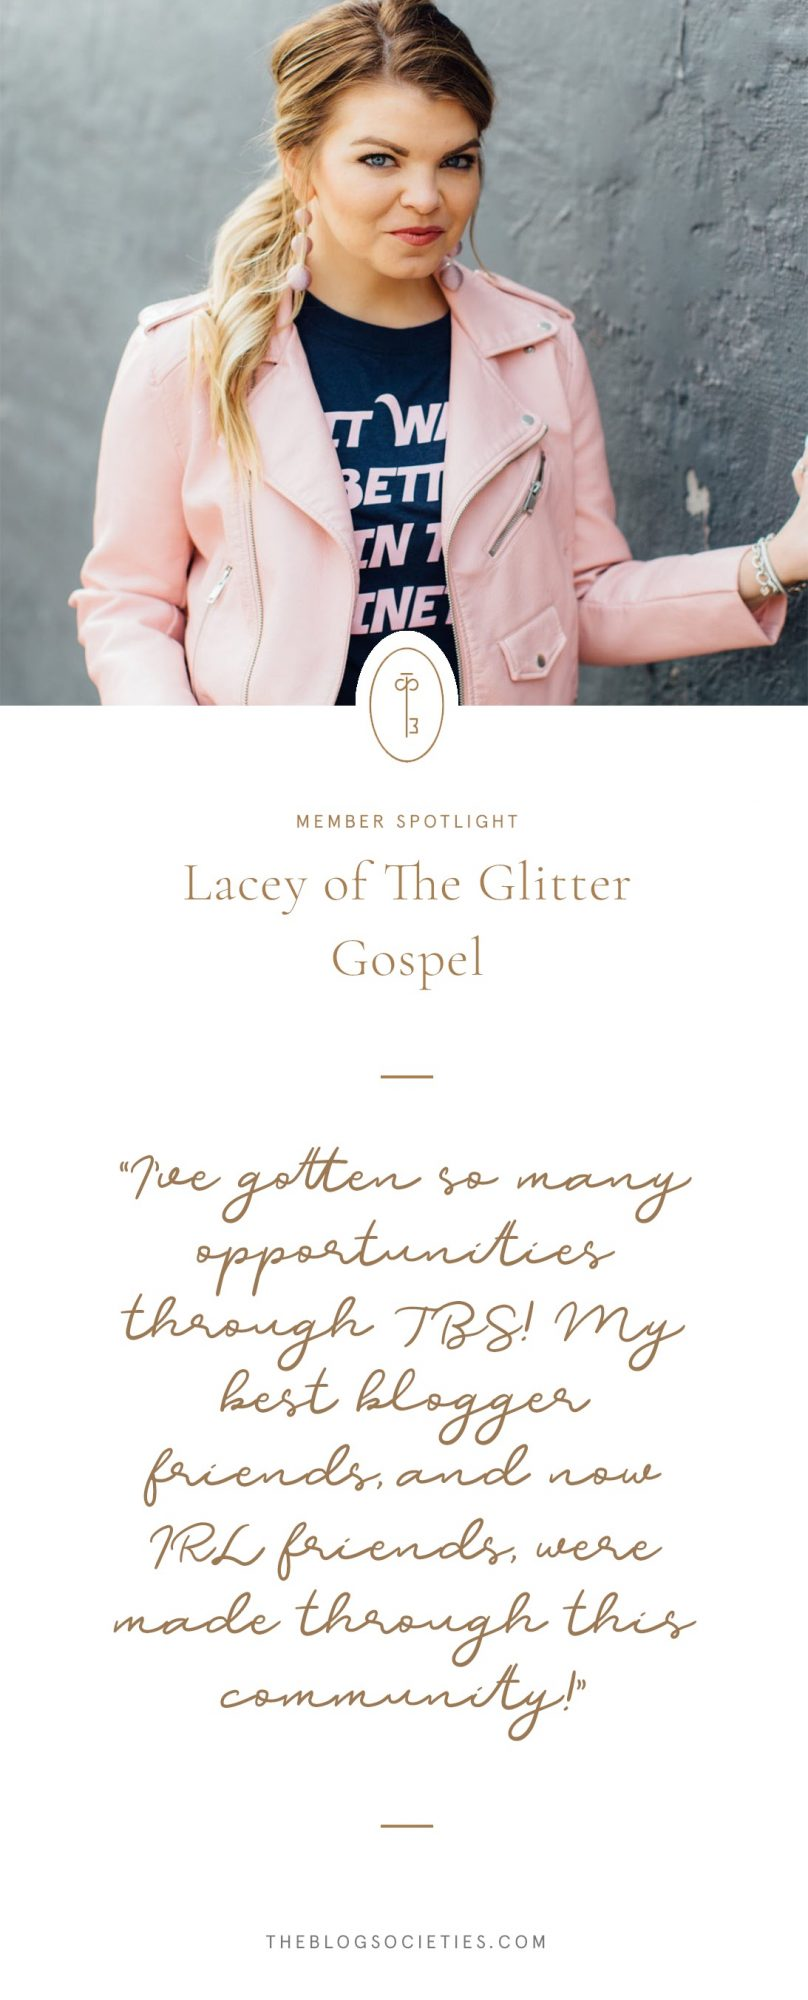 The Glitter Gospel Blog